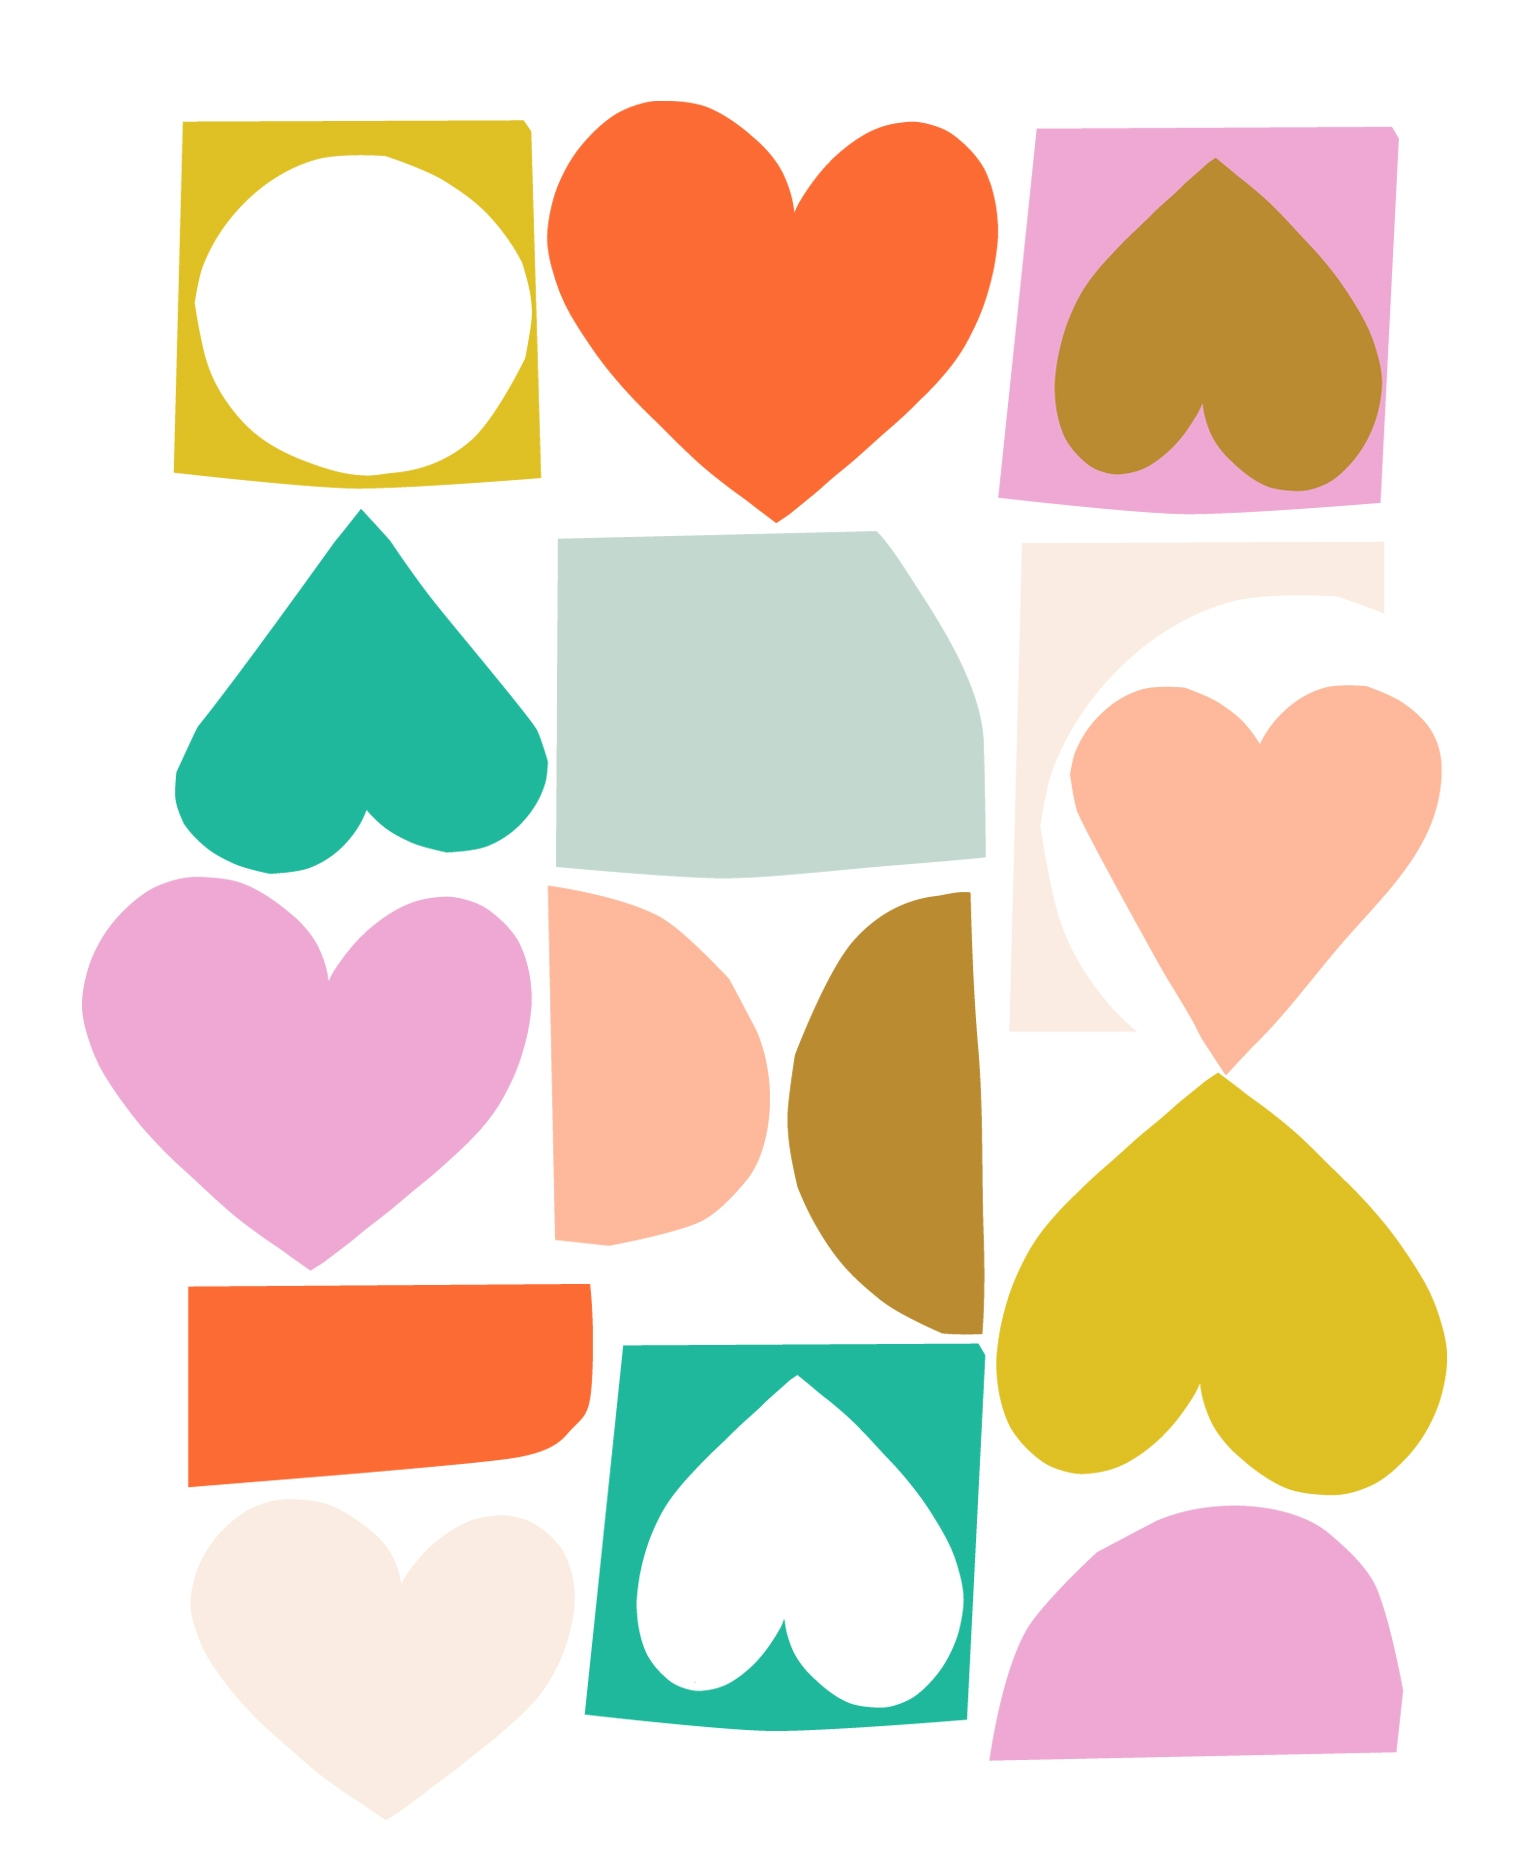 hearts_greetingcard_ampersand.jpg